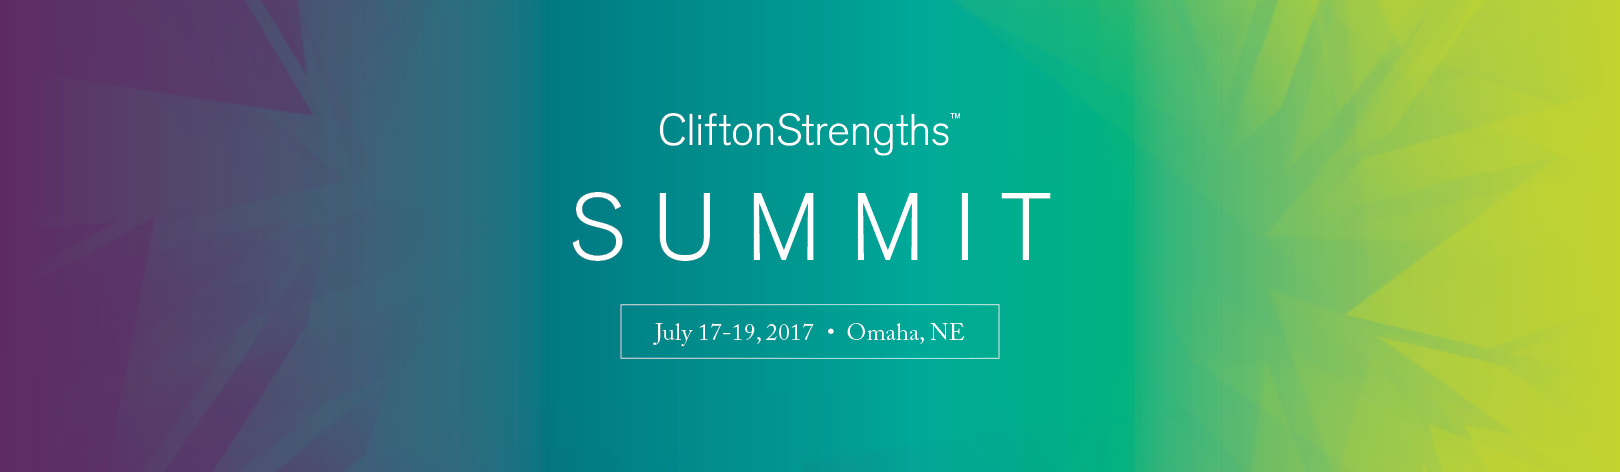 CliftonStrengths Summit July 17-19 2017 Omaha Nebraska